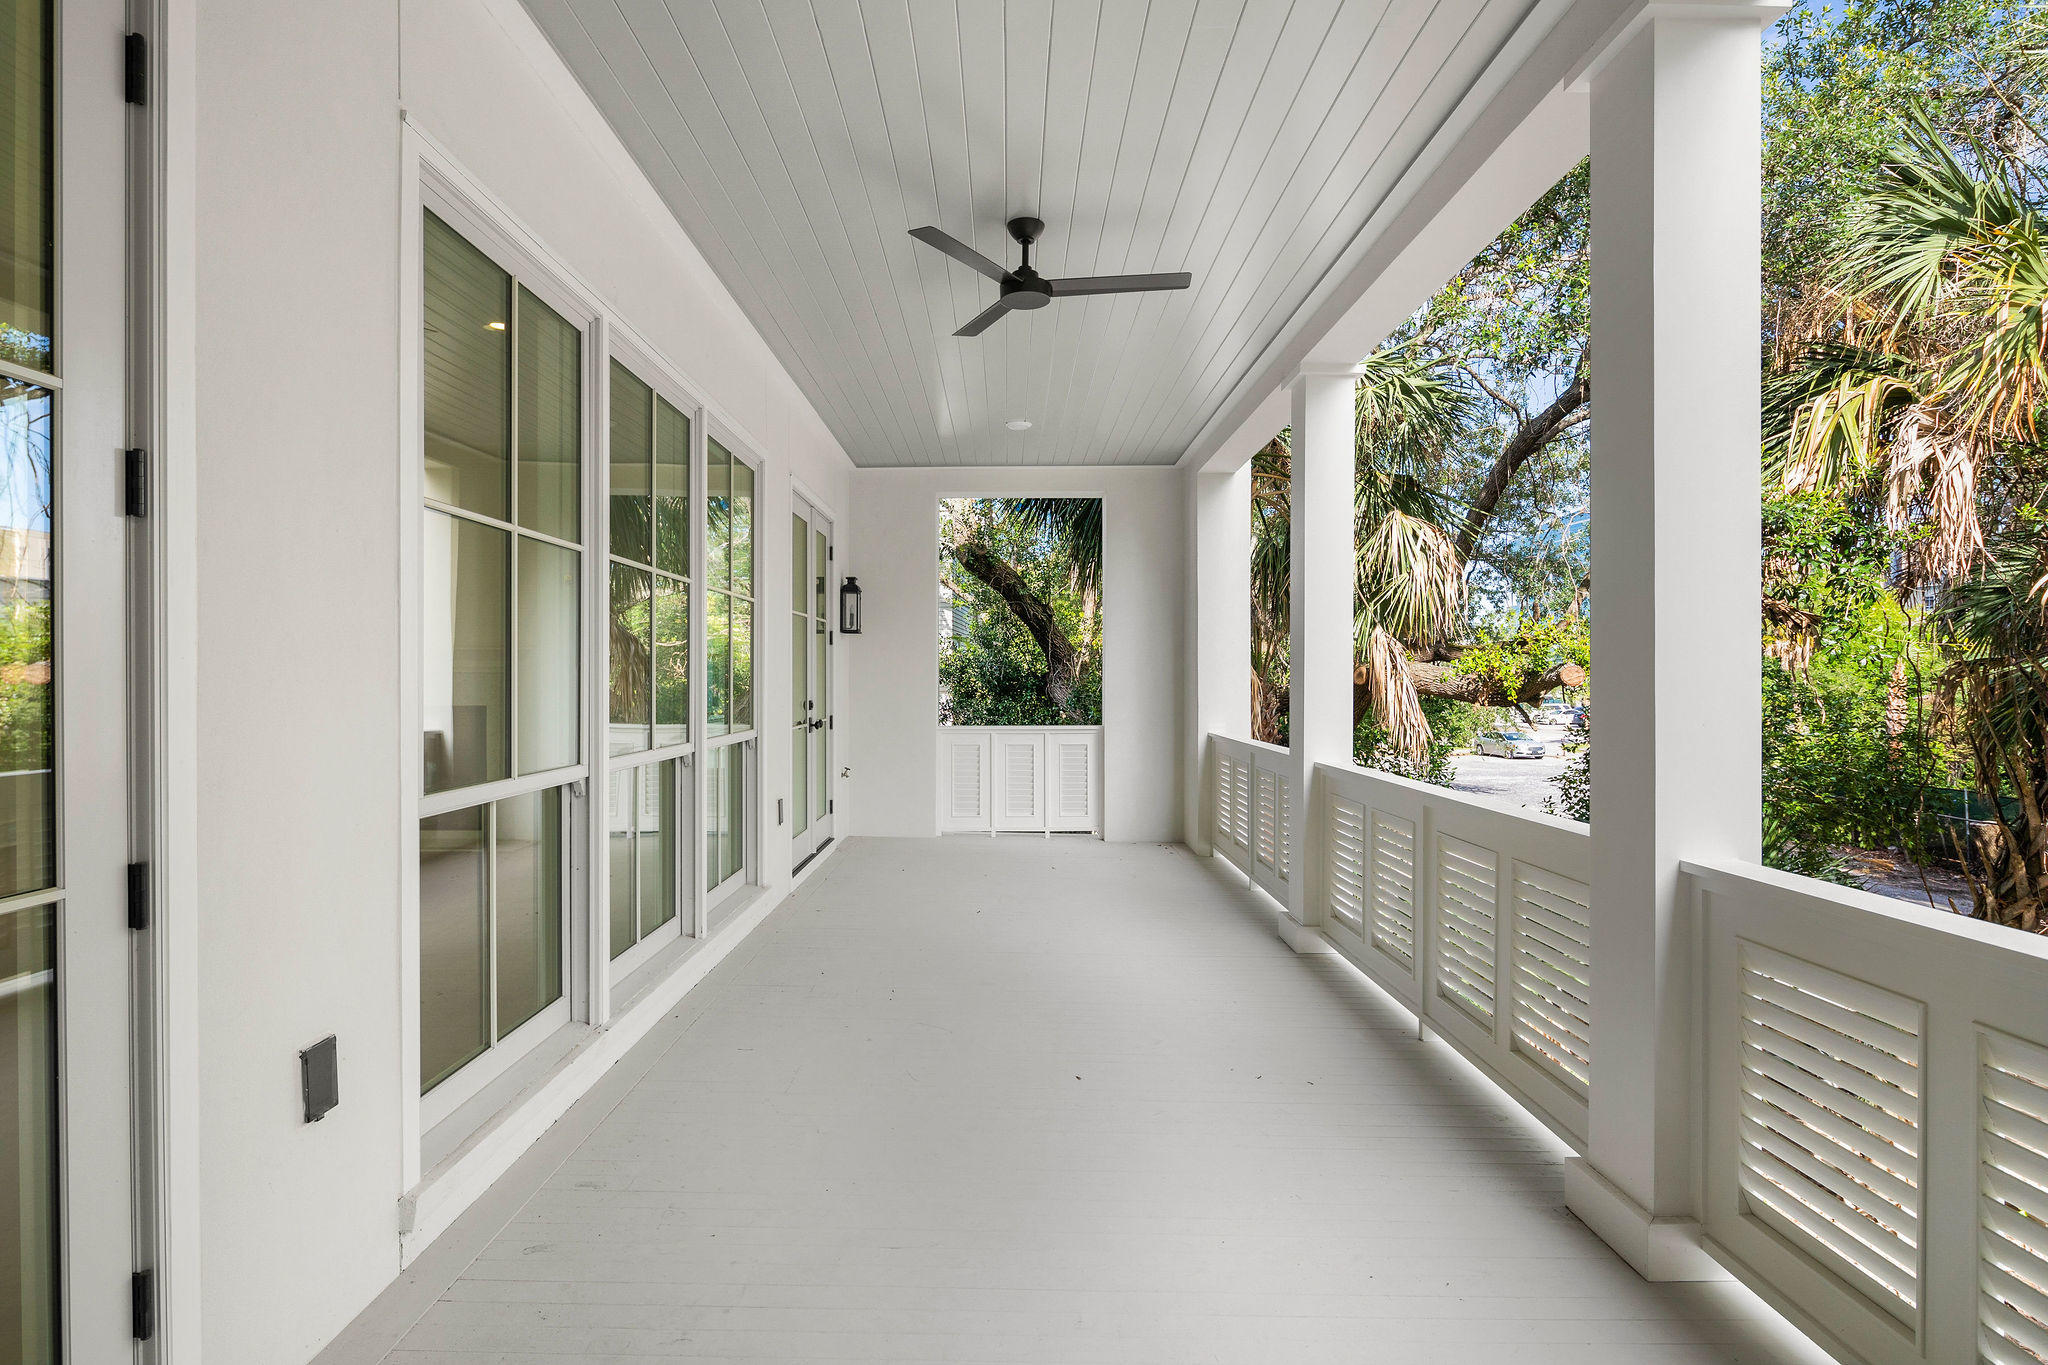 Harleston Village Condos For Sale - 61 B Barre, Charleston, SC - 28